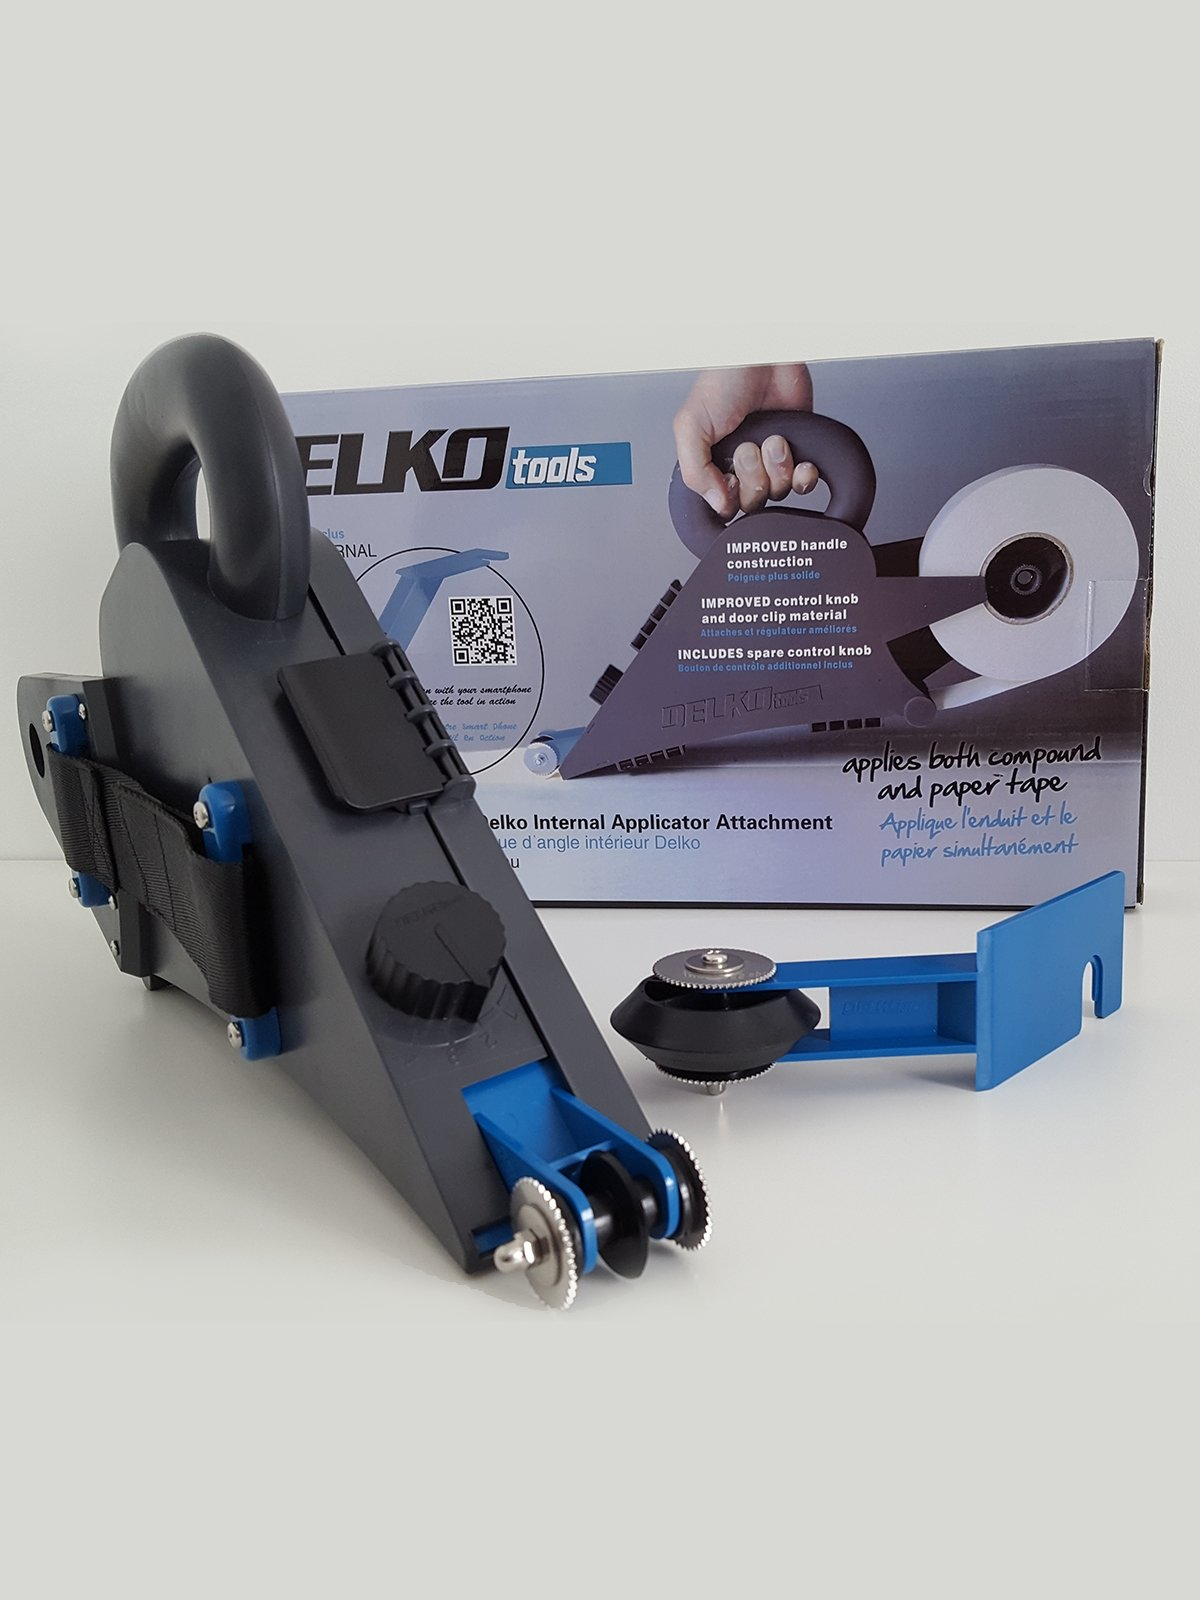 Drywall Master King Pro Automatic Taping Tool FREE Delko Banjo Taper; SAVE $89